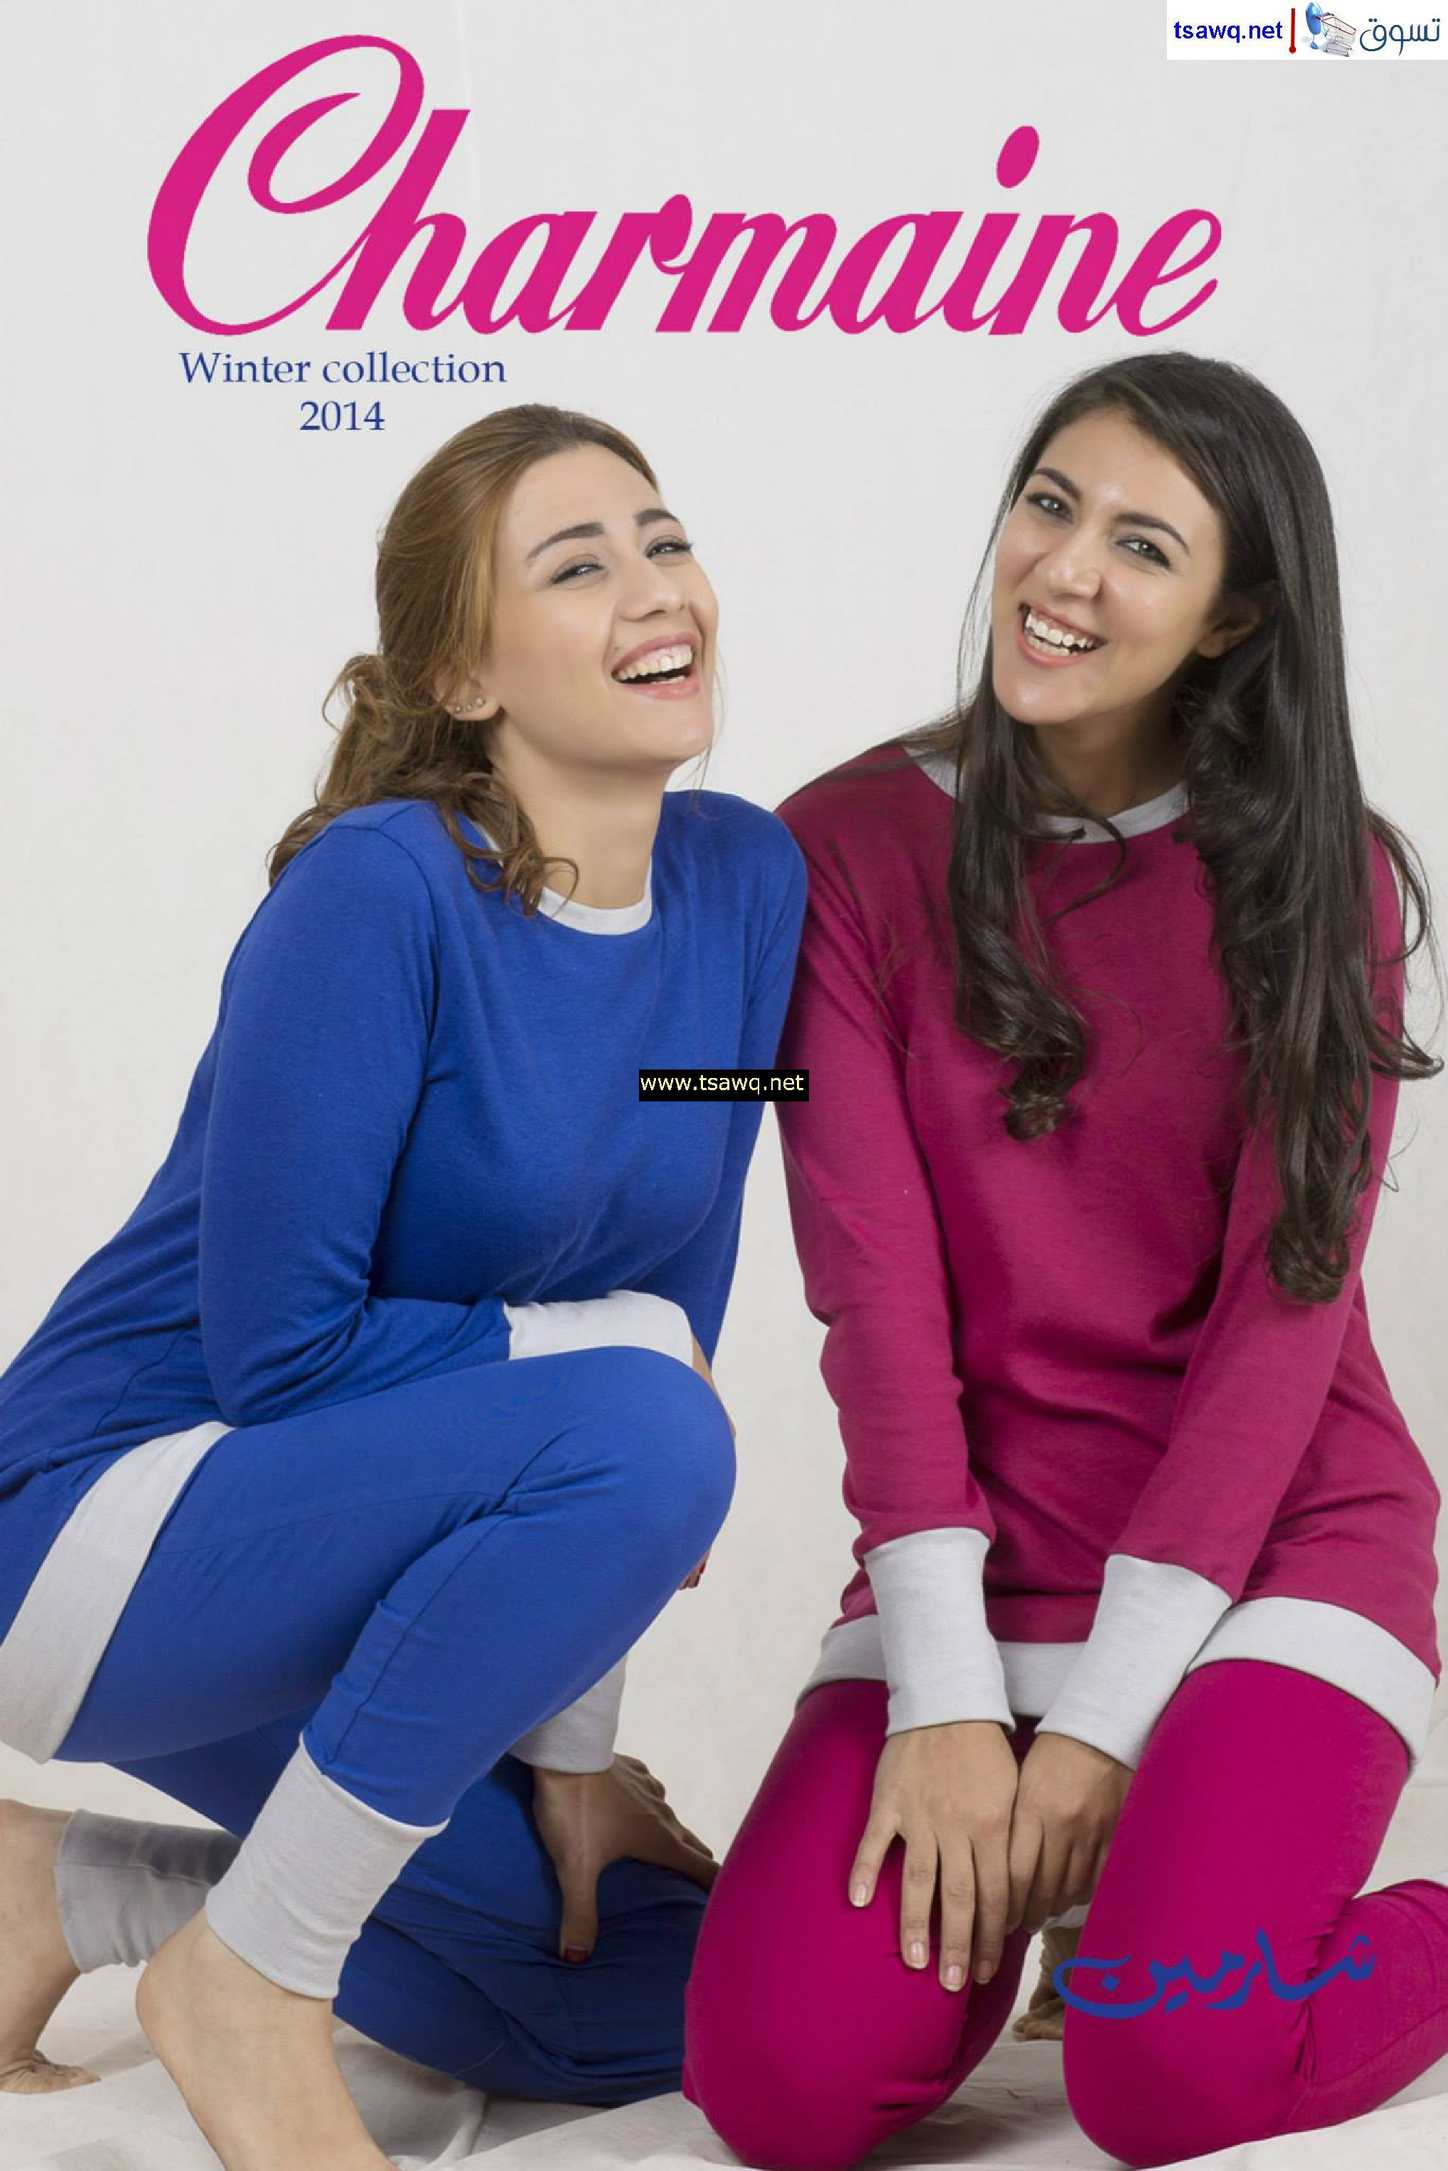 كتالوج شارمين شتاء 2014 charmaine winter collection مع نسخة pdf